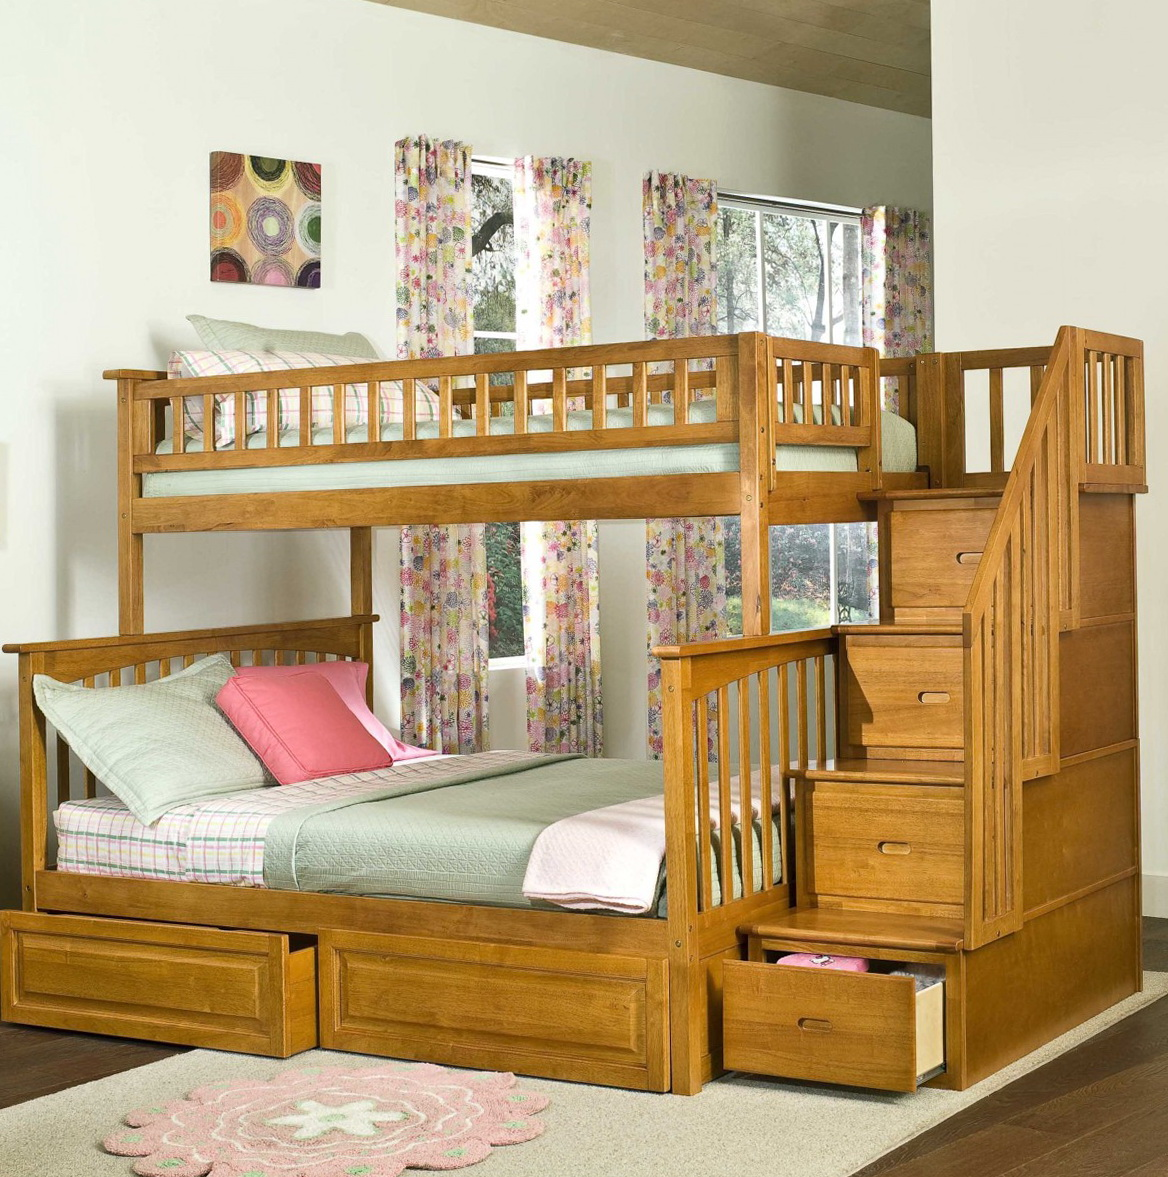 Full Over Full Size Bunk Beds